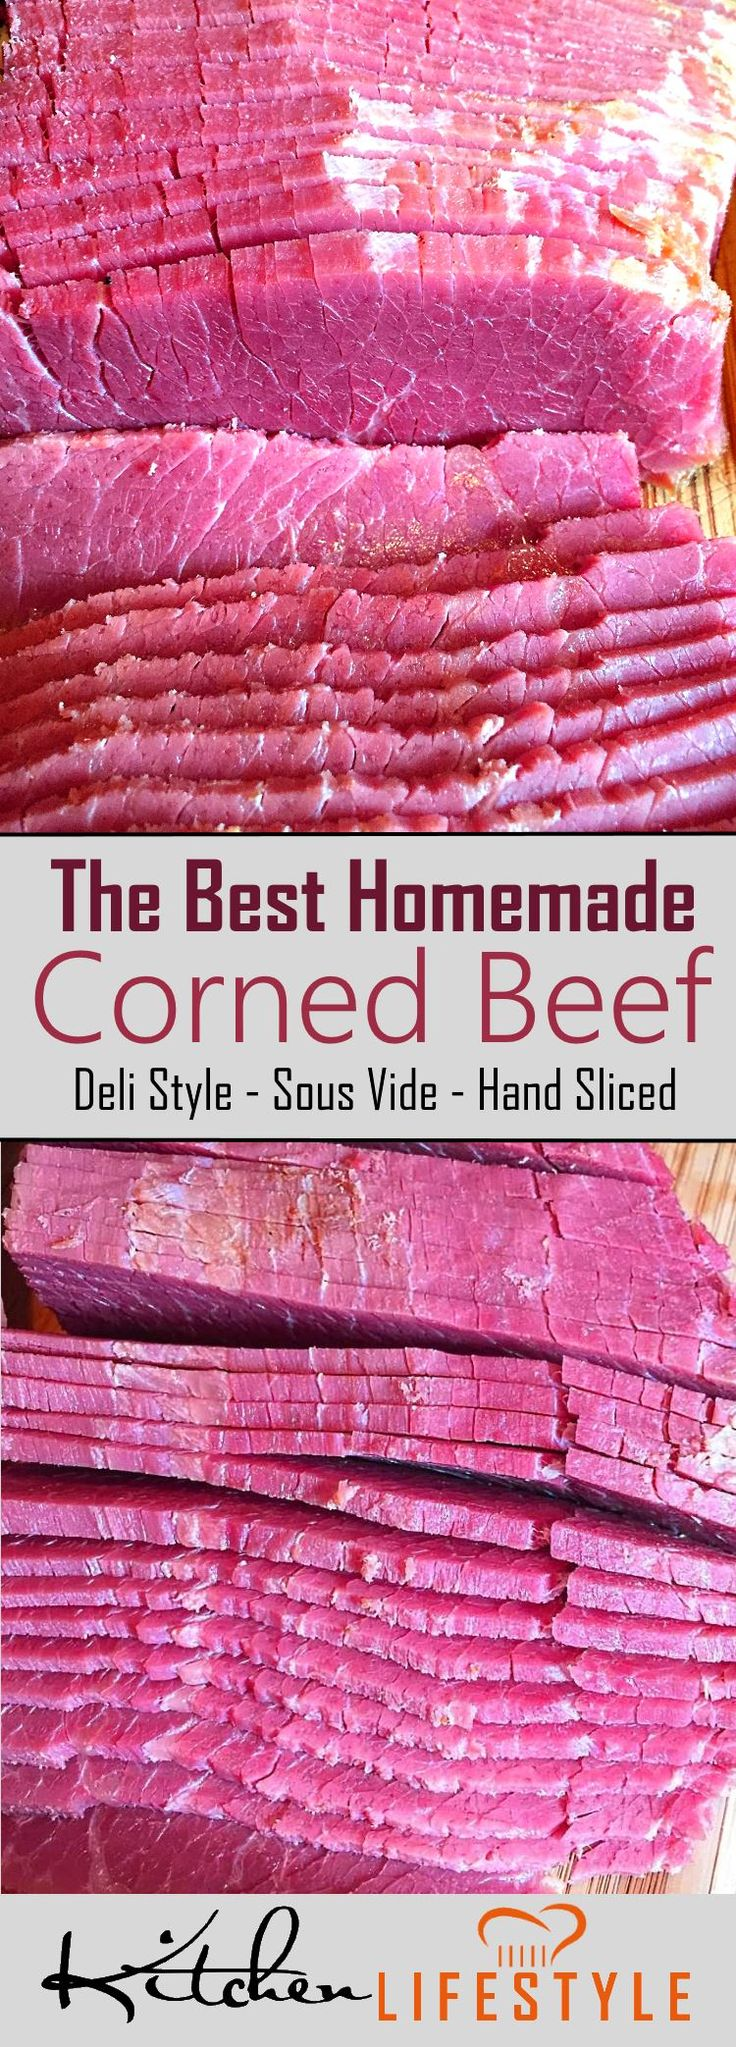 The Best Sous Vide Corned Beef Recipe - Are you a Corned Beef fan? If you are, then this corned beef recipe is for you! It's been tested to perfection. via @kitchnlifestyle